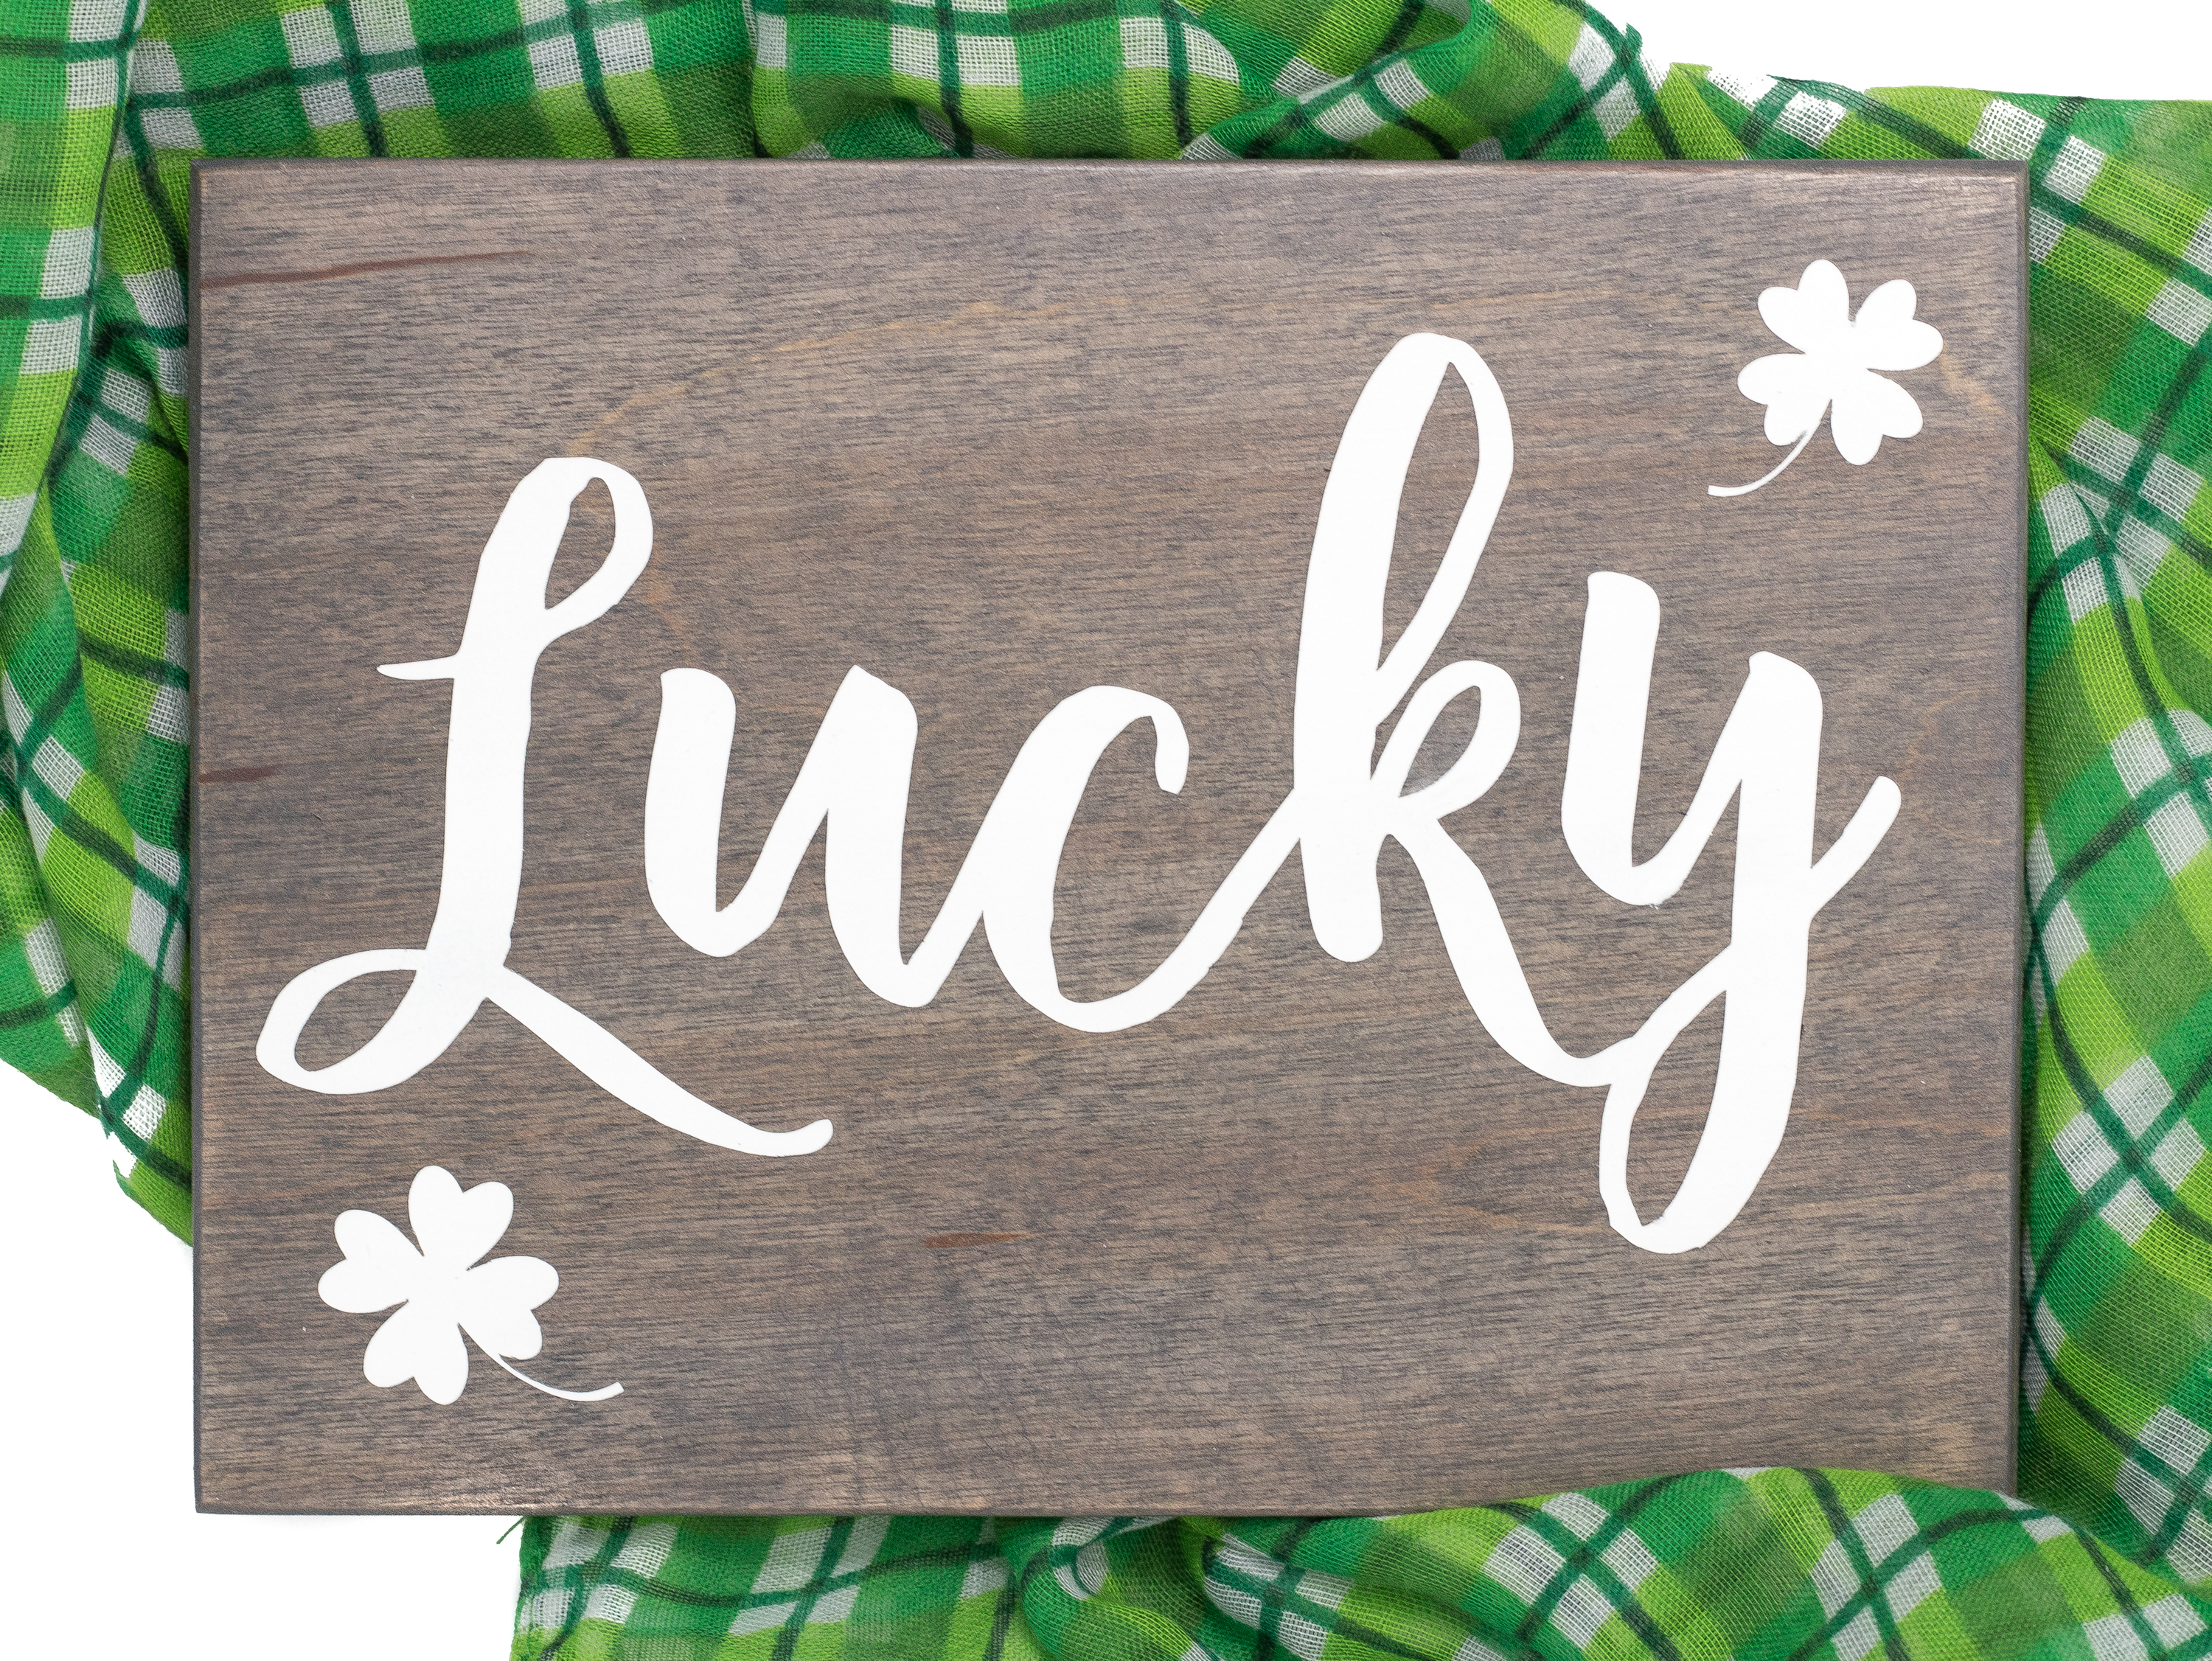 Lucky Wooden St Patricks Day Sign Handmade By Honeysuckle And Pine